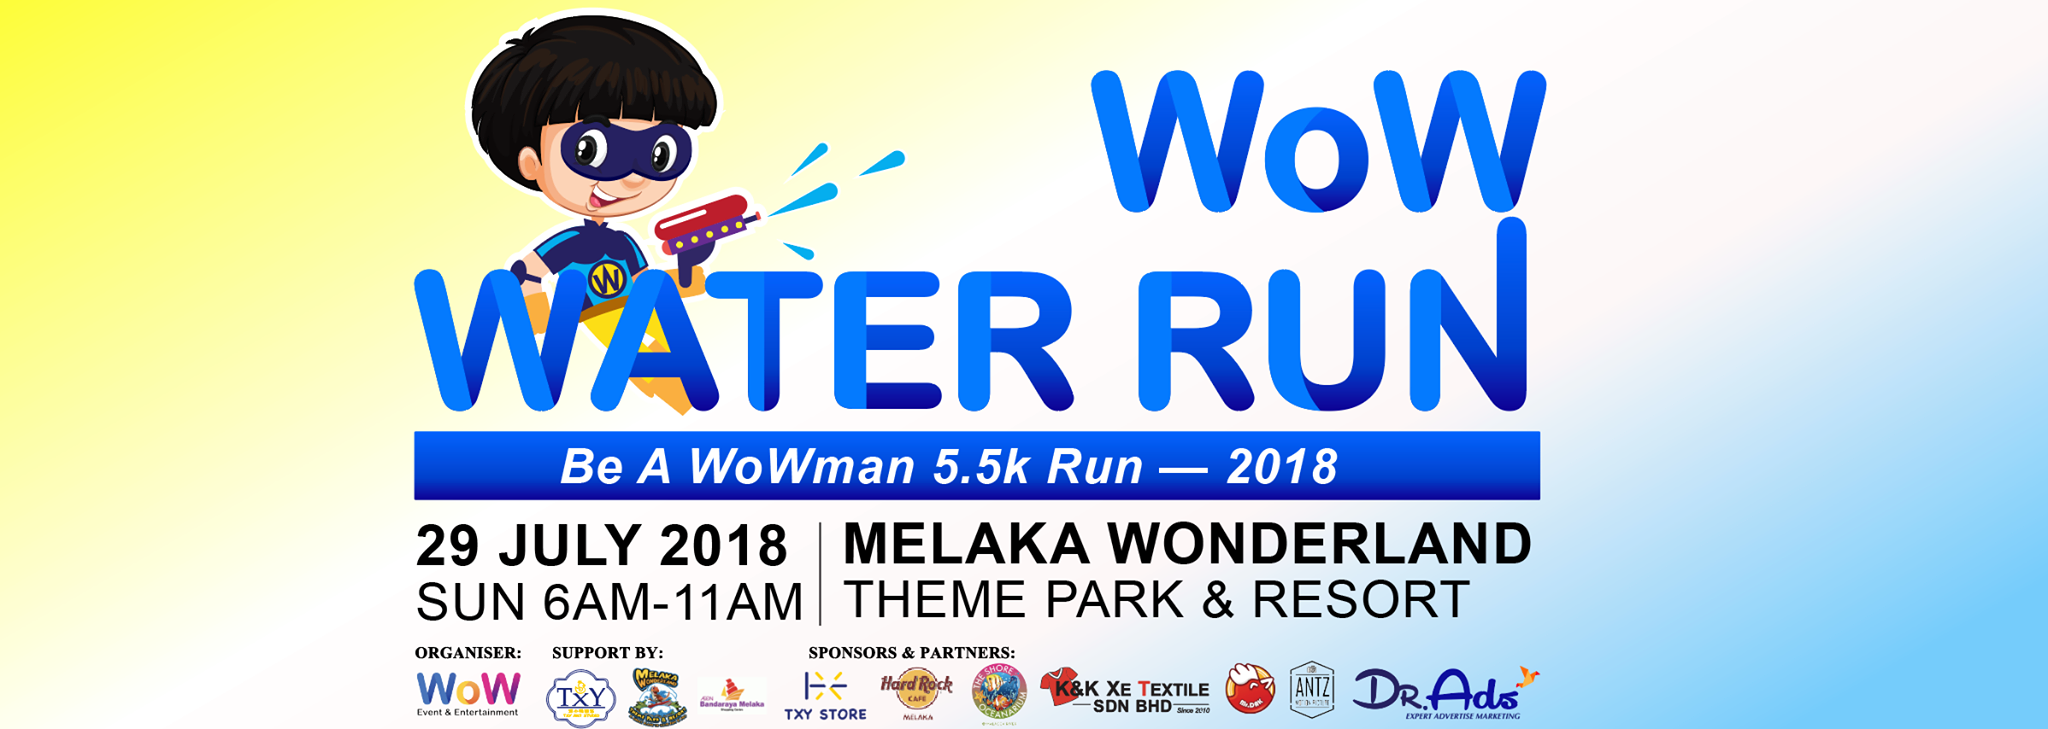 WoW Water Run 2018